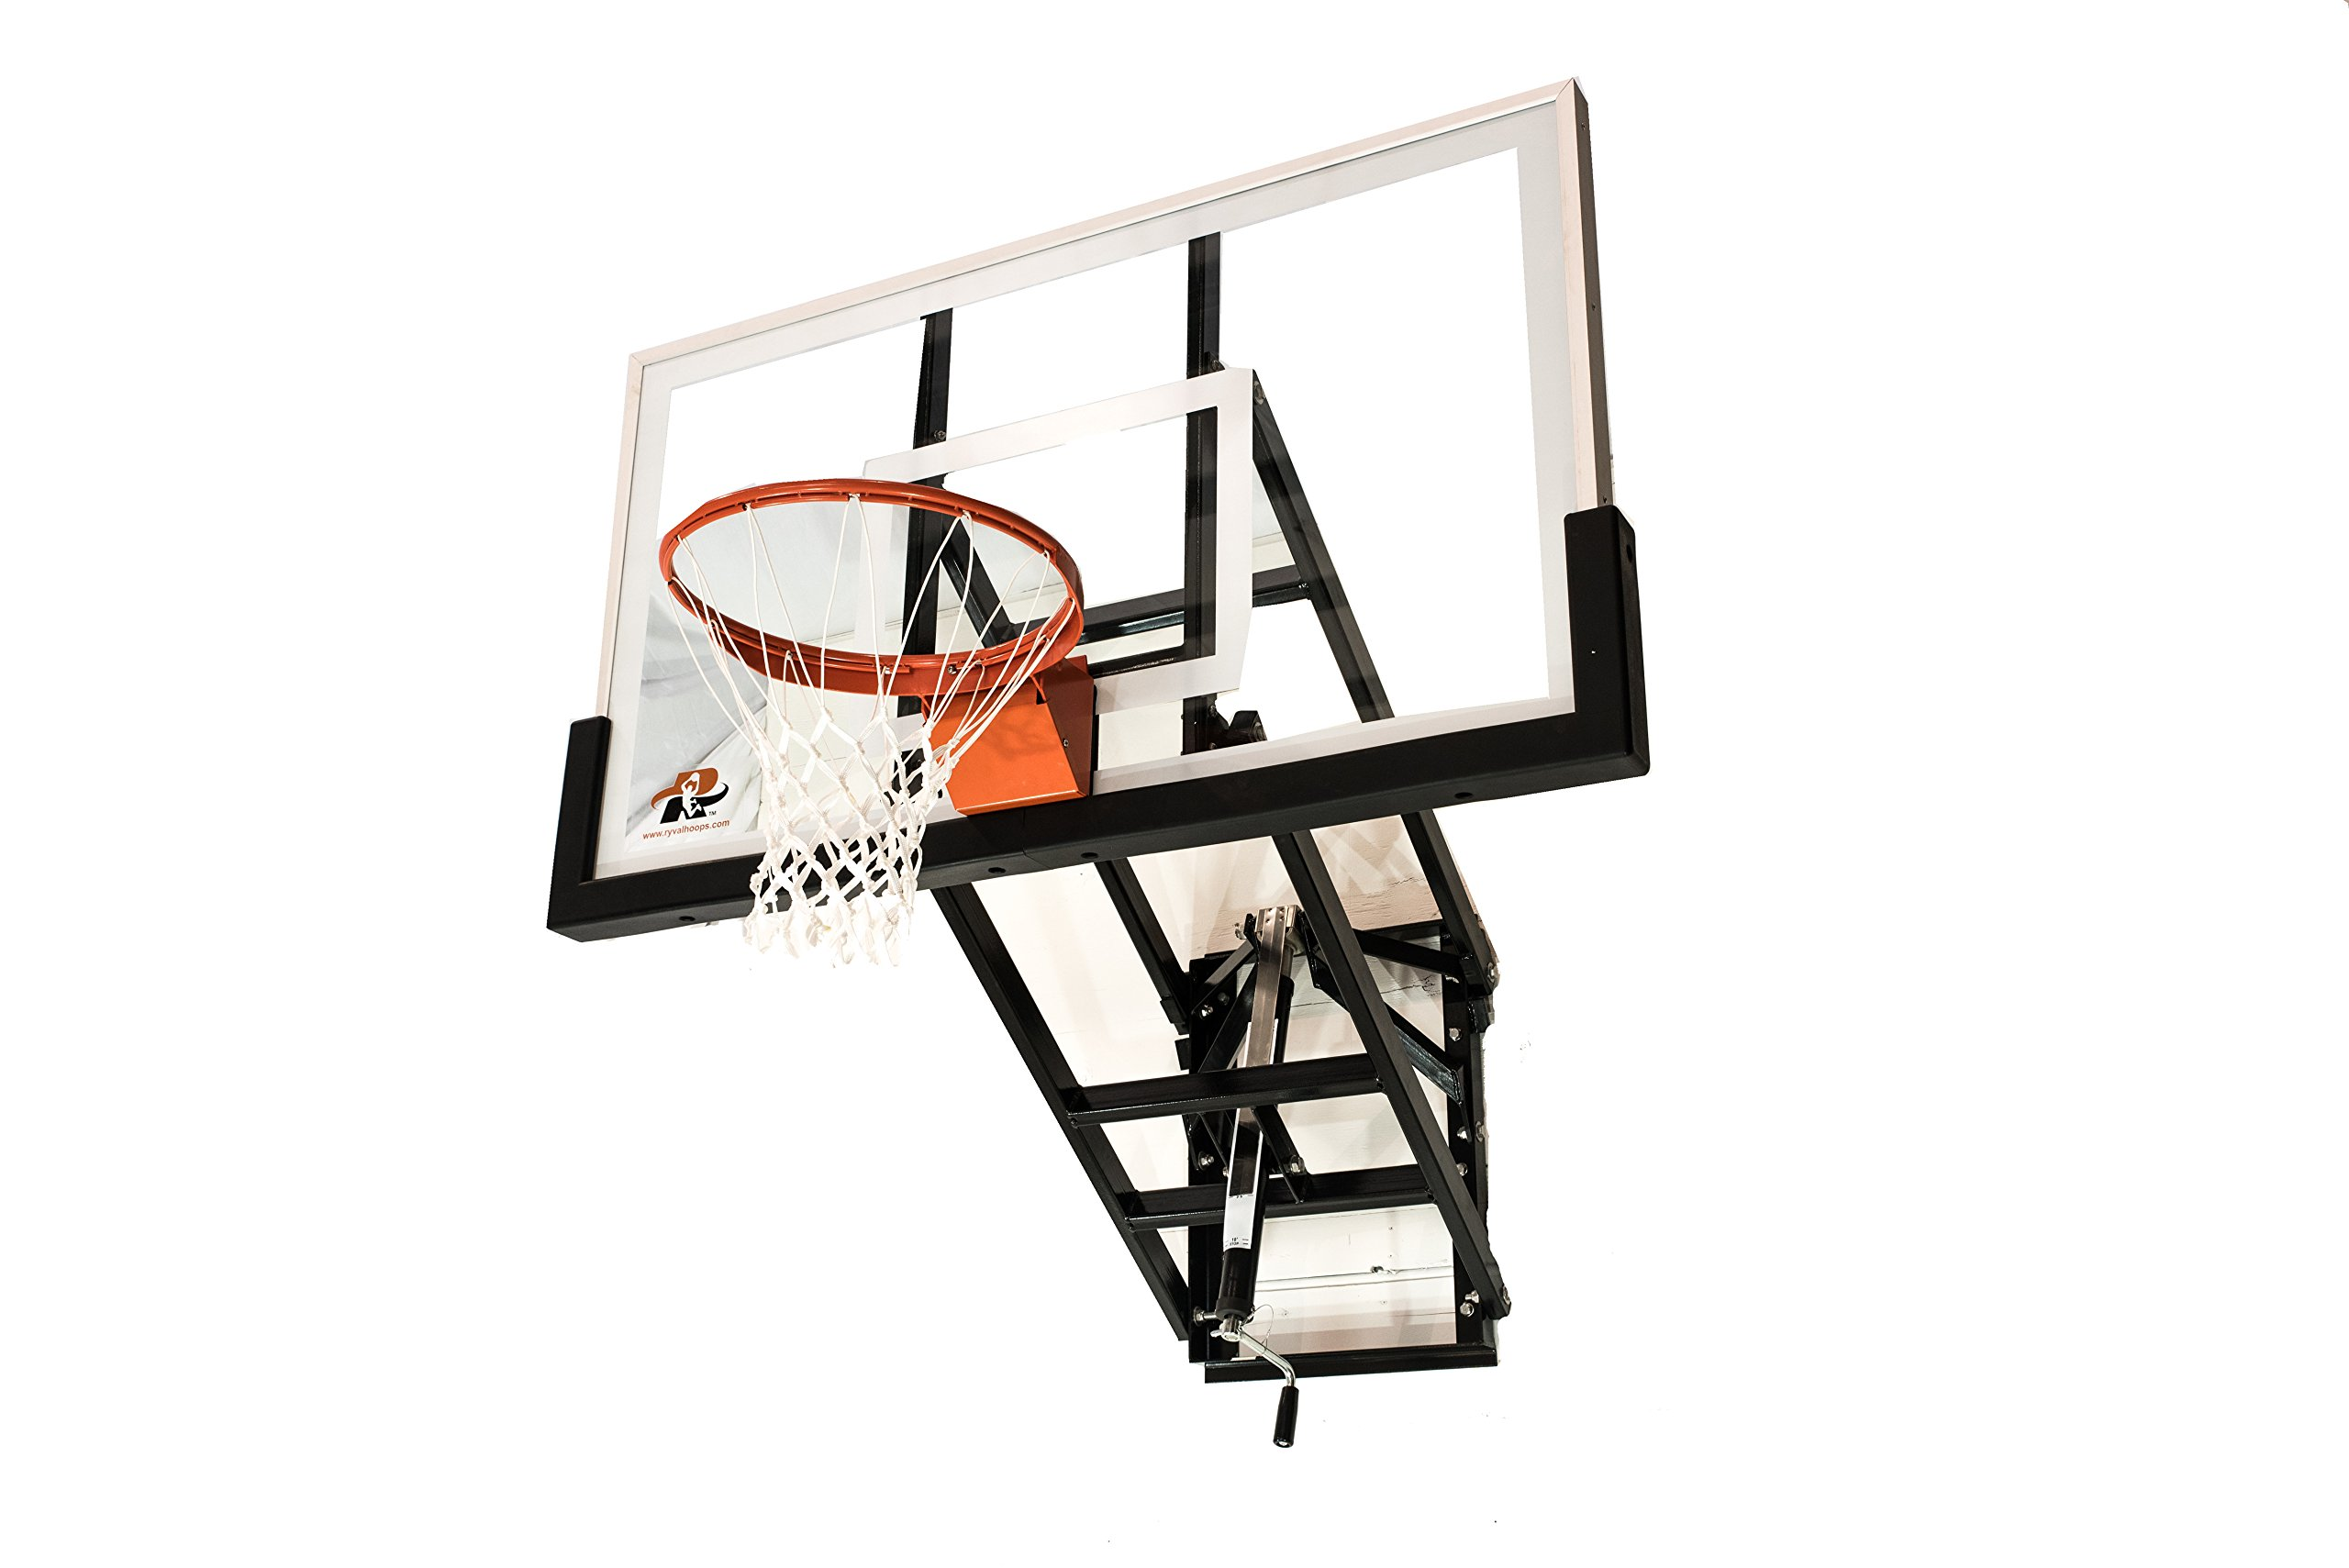 """Ryval WM60 Basketball Hoop - 60"""" Tempered Glass Backboard, Height Adjustable for Children & Adults, Wall Mounted Basketball Goal, Heavy Duty Flex Rim"""